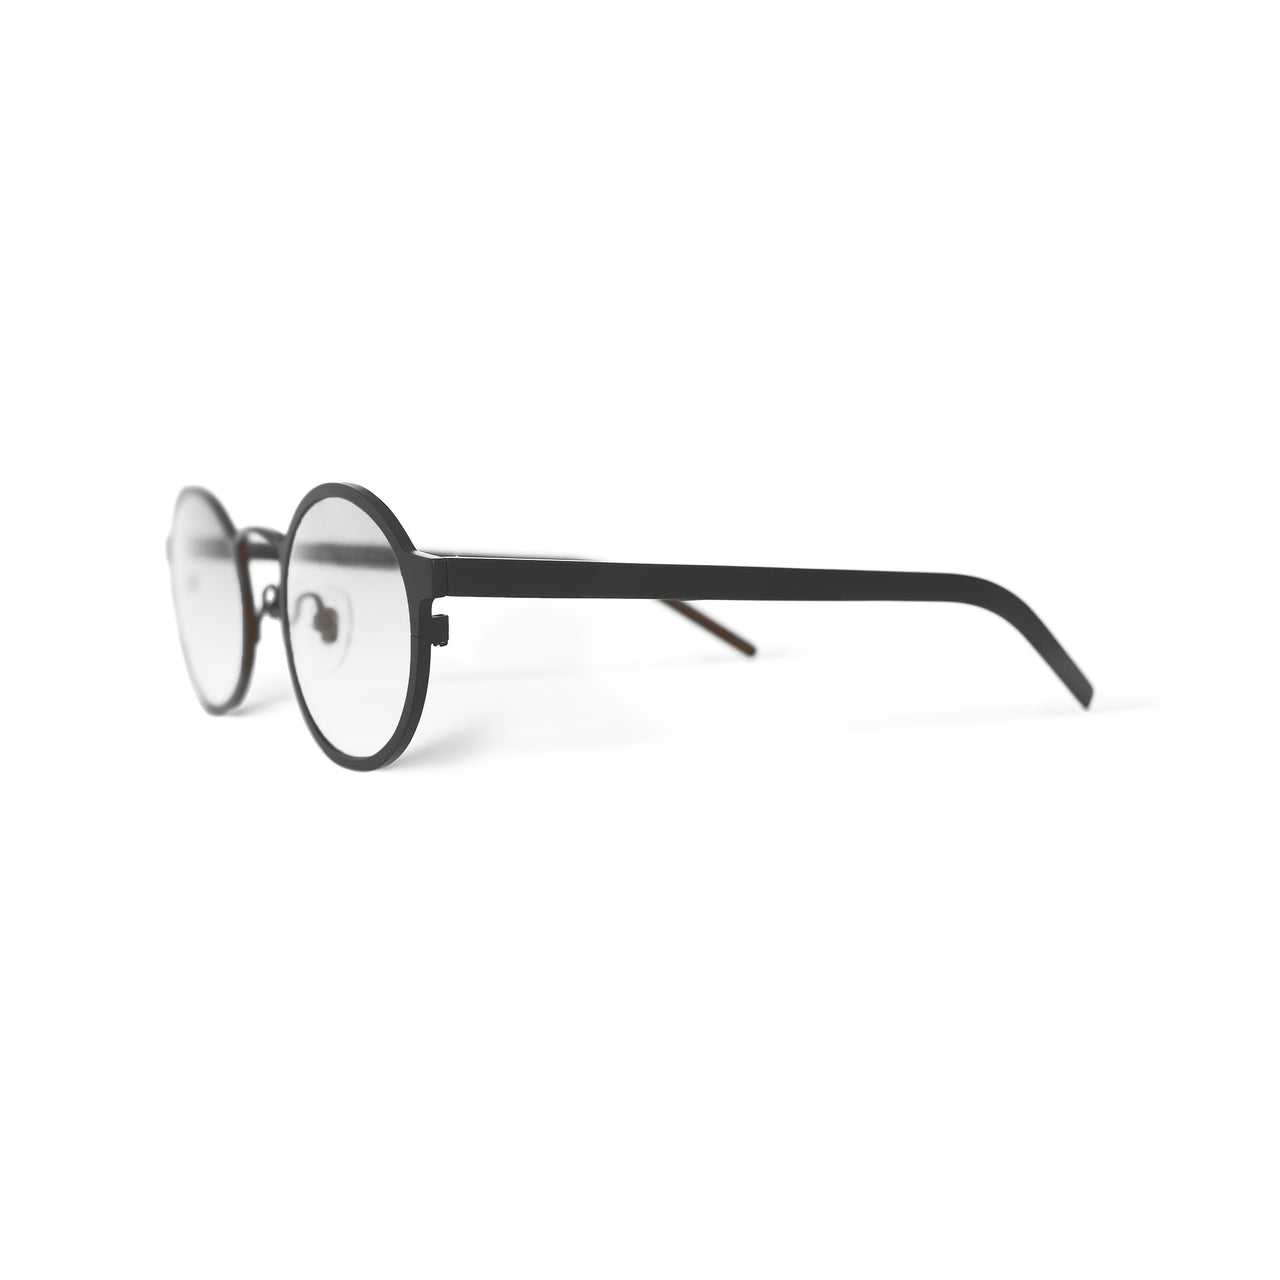 Metal. Matte Black. Clear Lens. - BLYSZAK eyewear eyewear - eyewear, optical, sunglasses